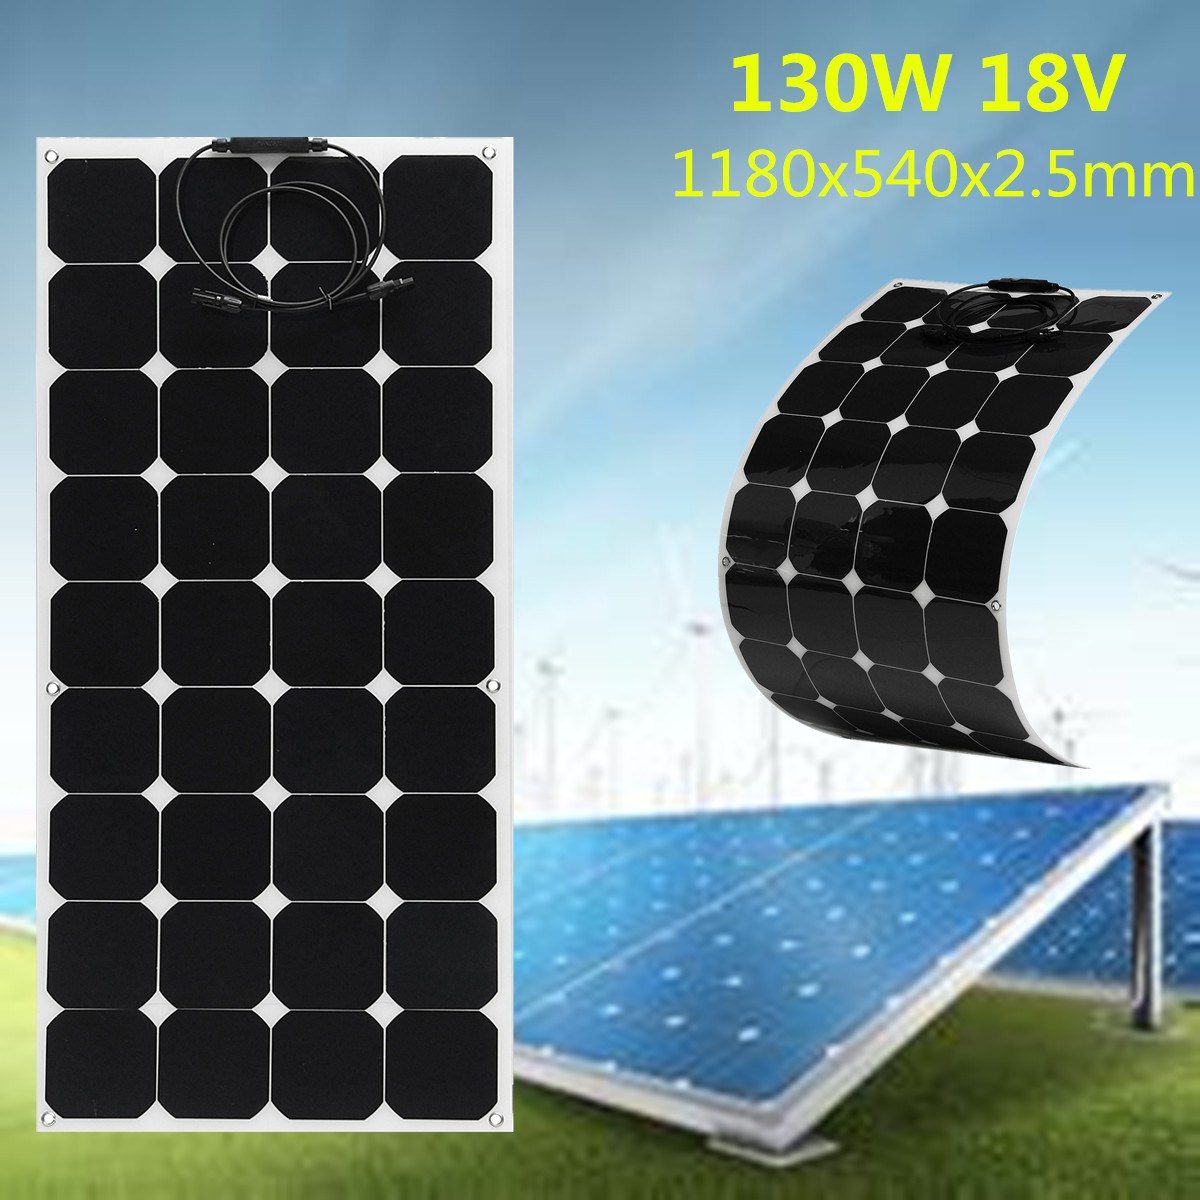 SP-35 130W 18V Semi Flexible Monocrystalline Solar Panel Waterproof High Conversion Efficiency For RV Boat Car + 1.5m Cable